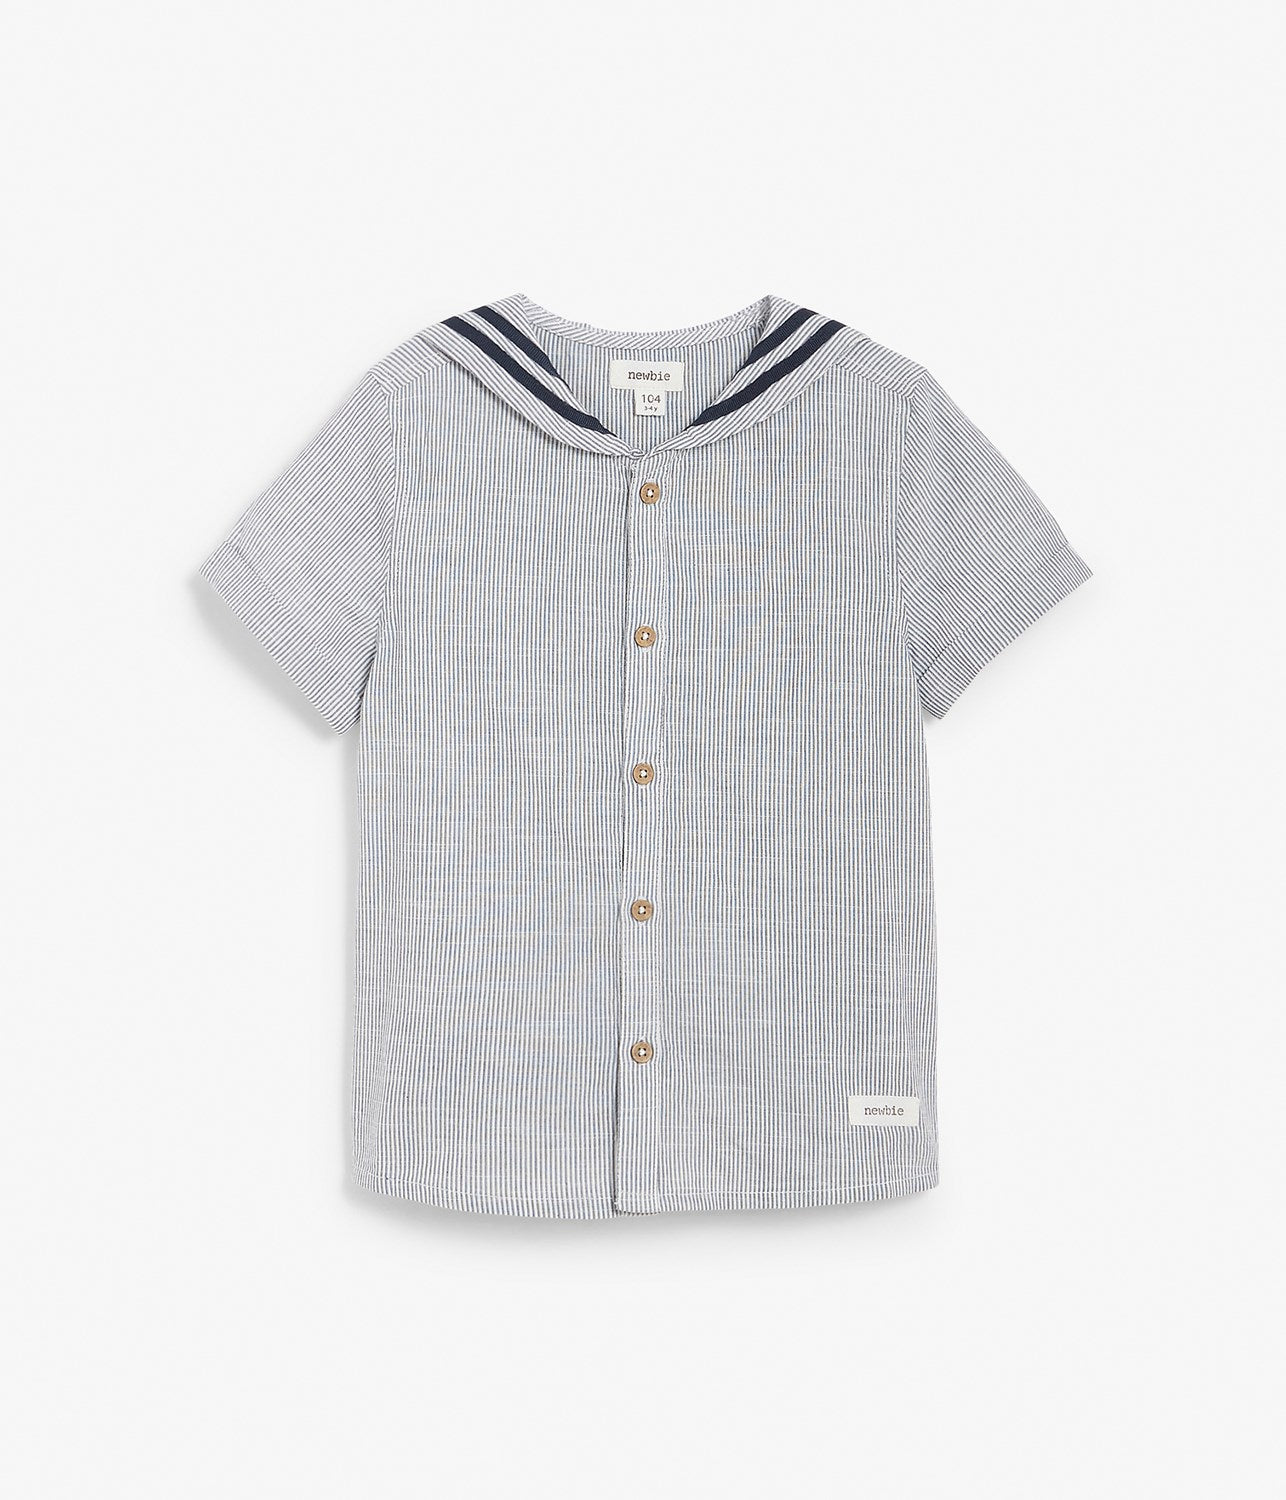 Kids sailor top